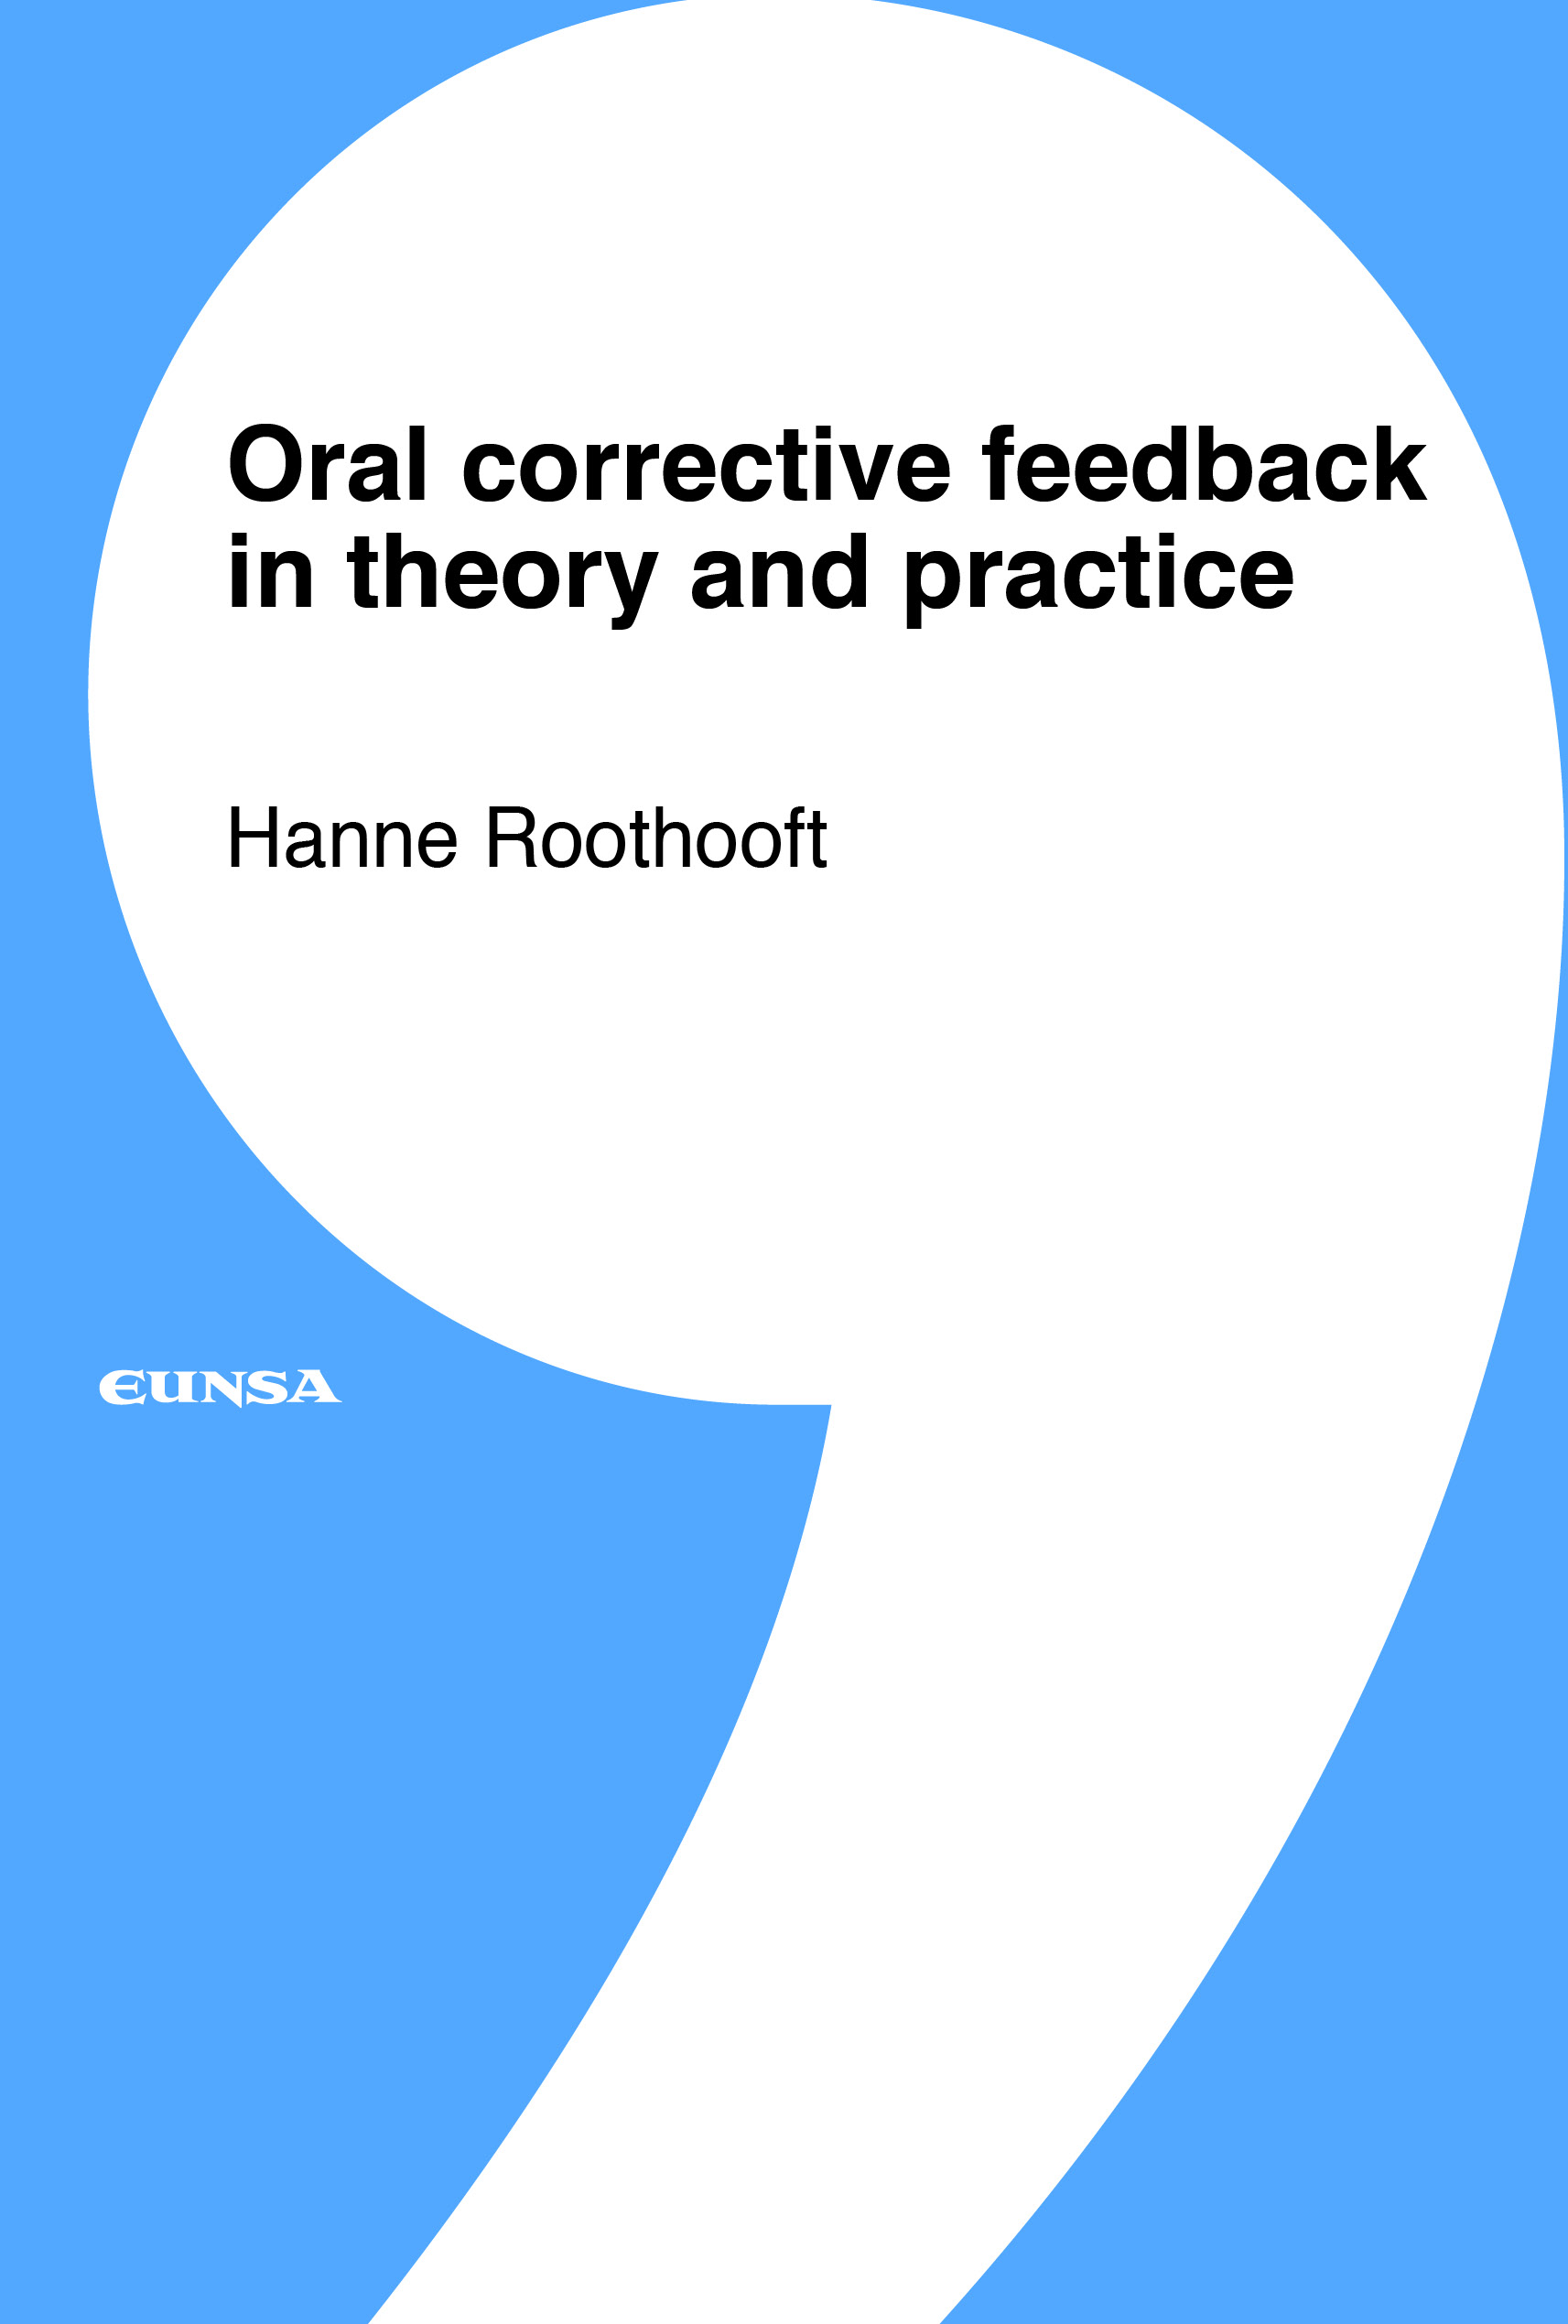 Oral corrective feedback in theory and practice (9788431335403)